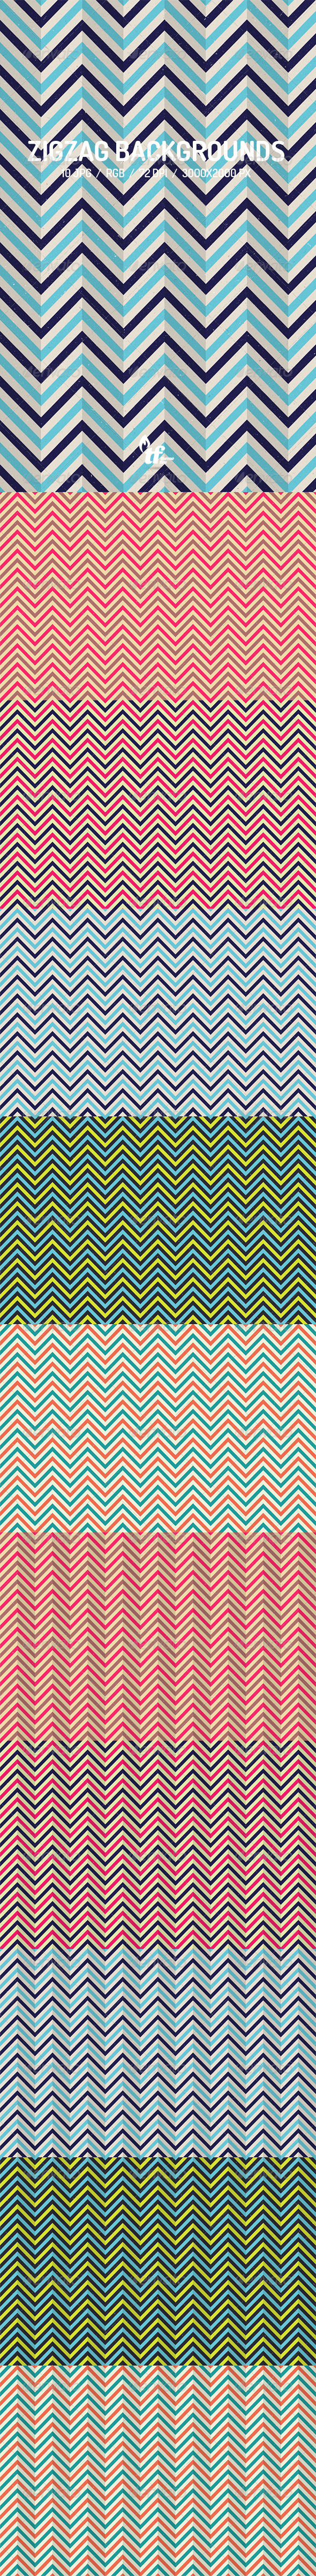 GraphicRiver Zigzag Backgrounds 7820429